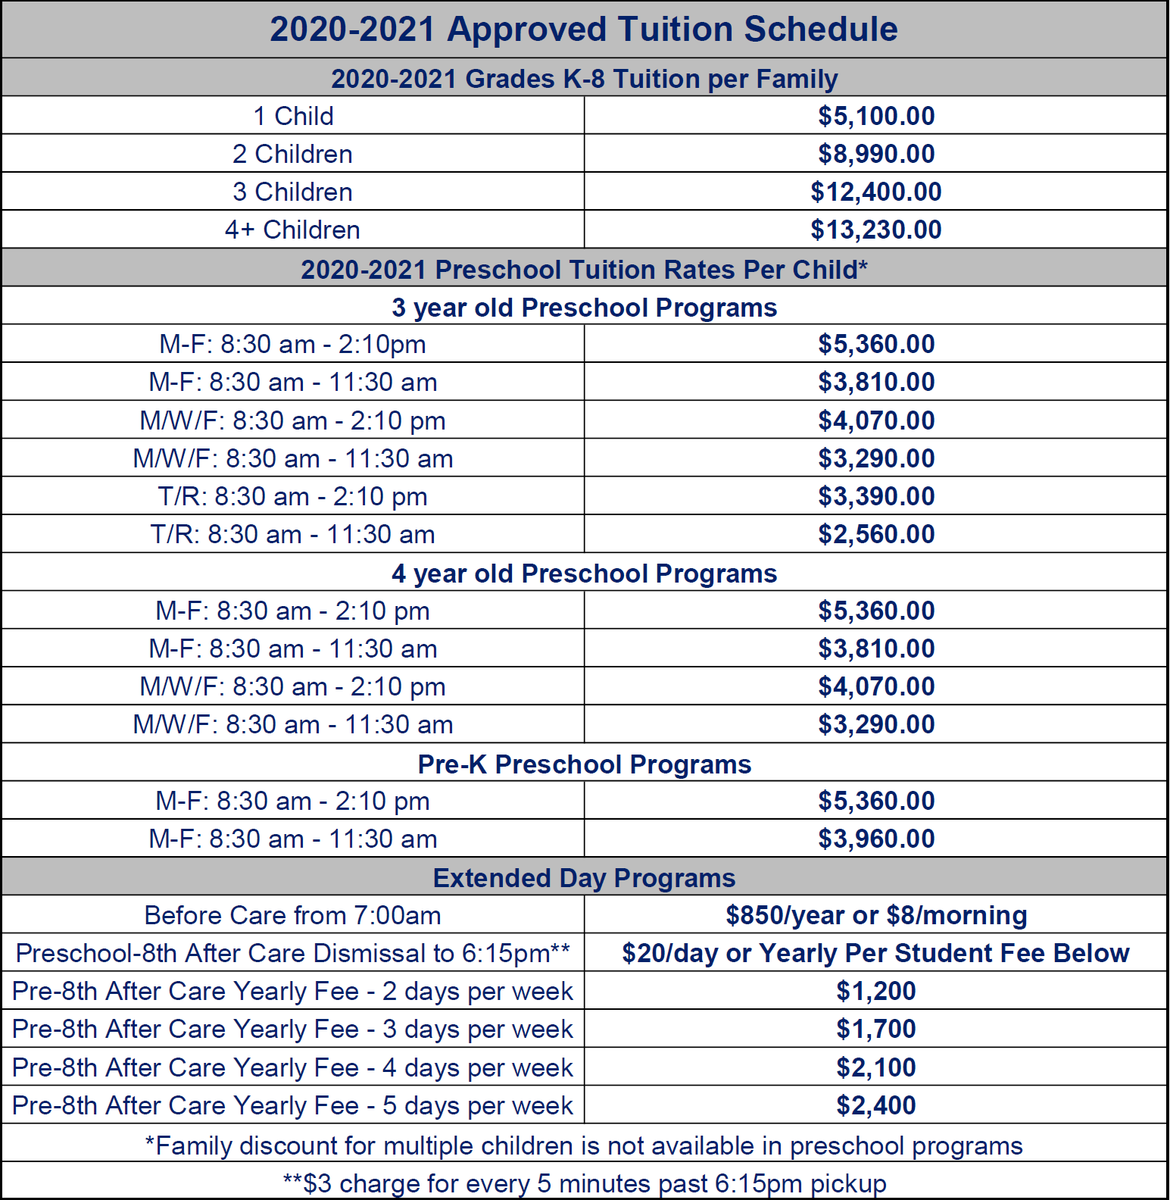 2020-2021 Tuition Schedule